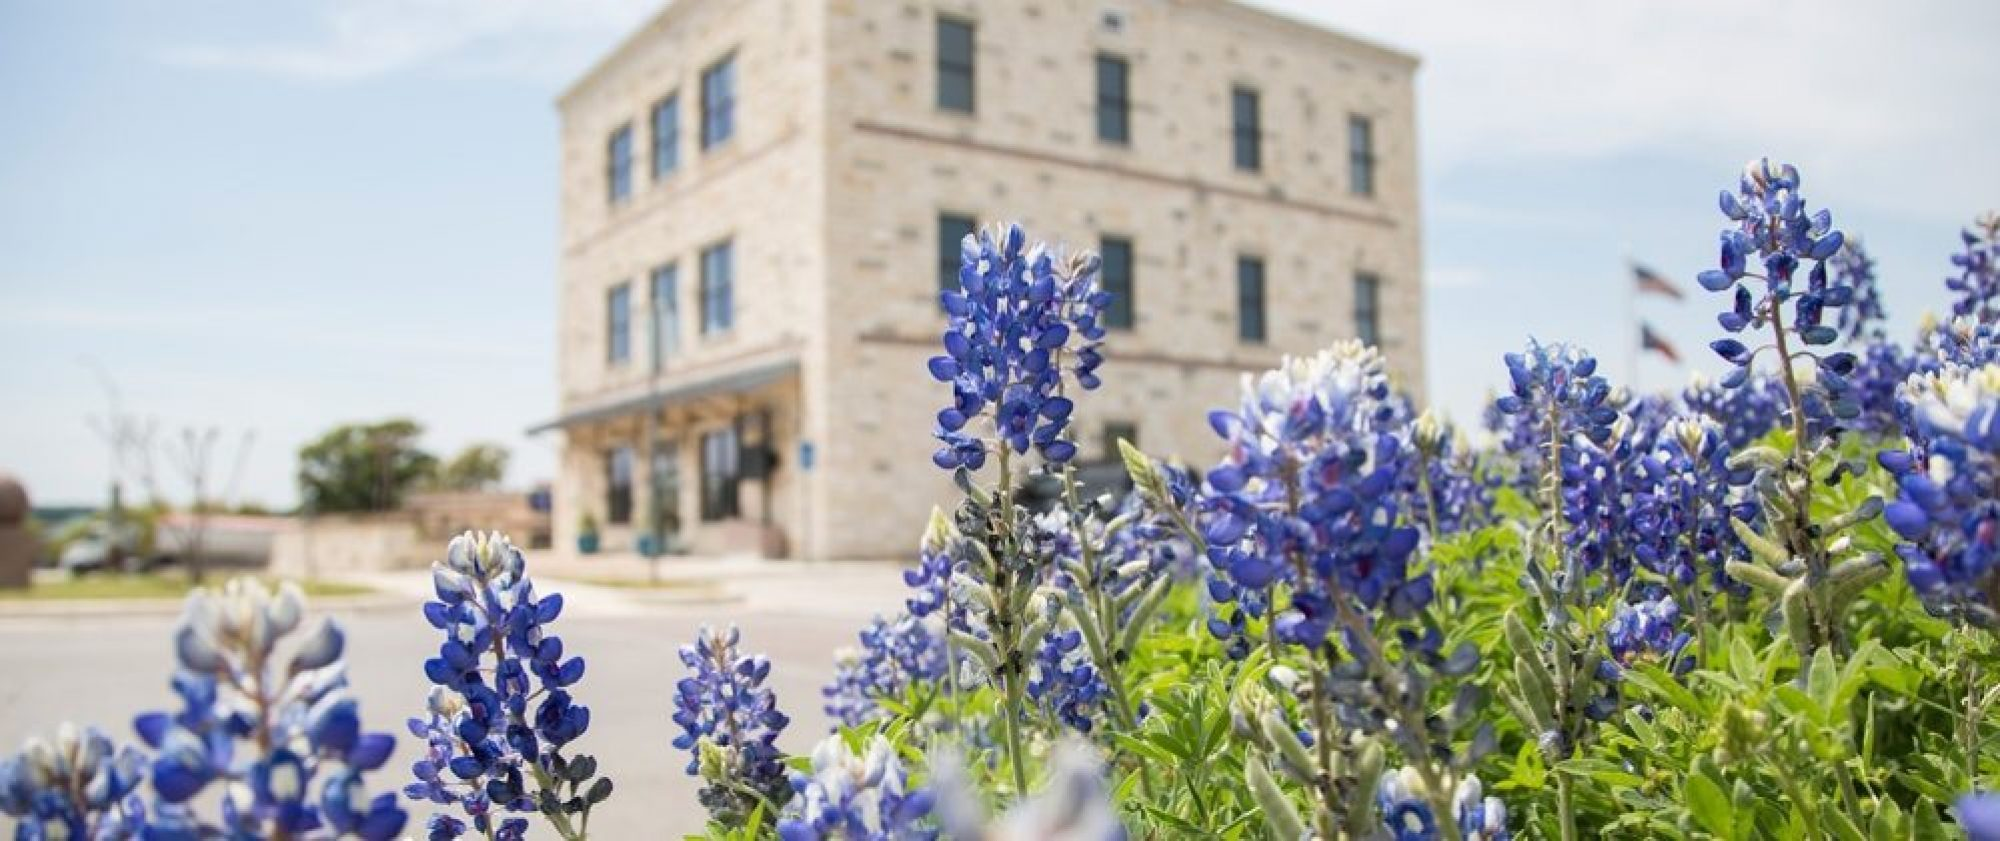 Marble Falls Visitor Center Bluebonnets